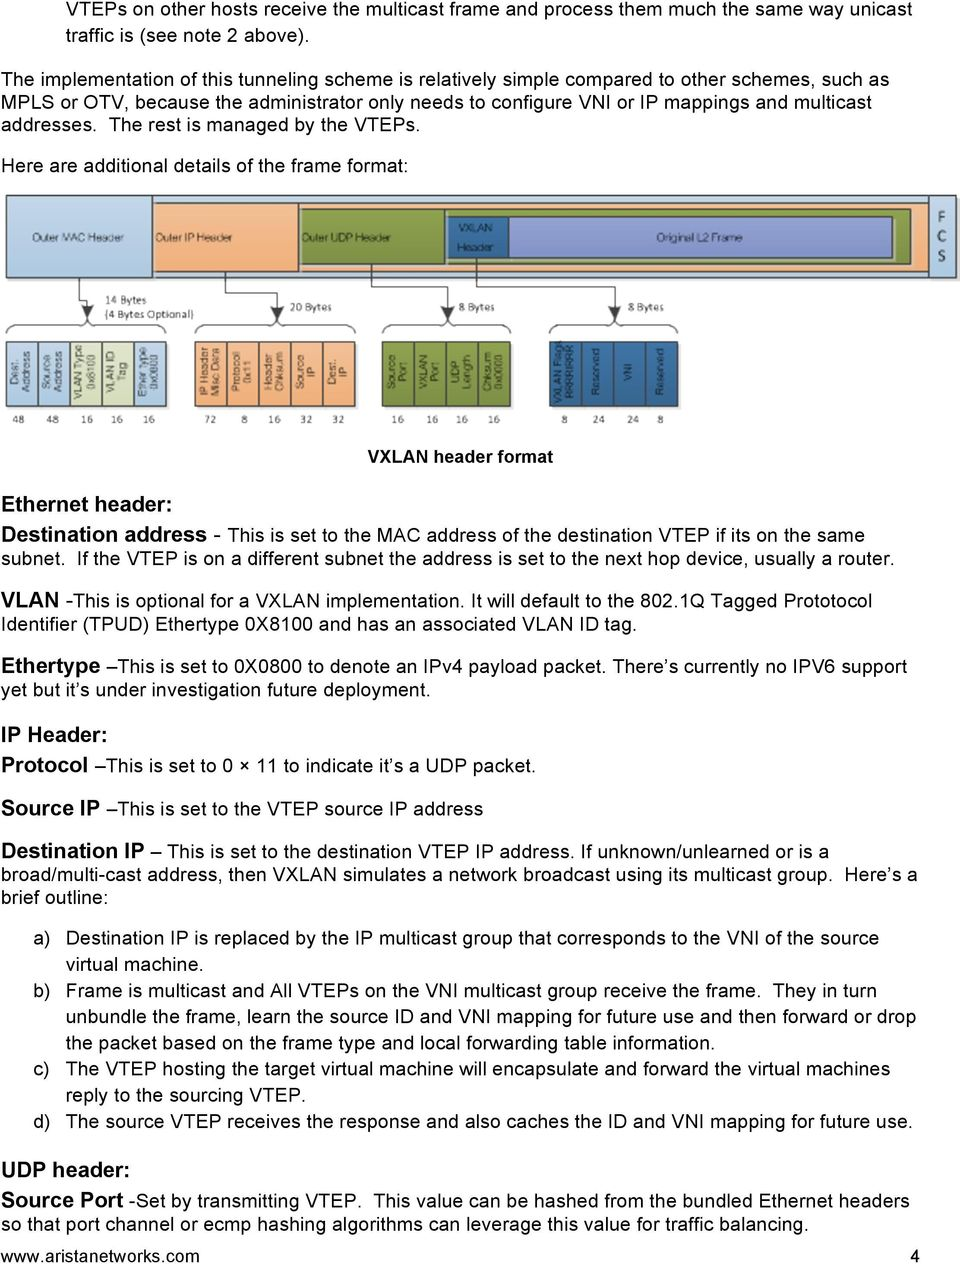 VXLAN: Scaling Data Center Capacity  White Paper - PDF